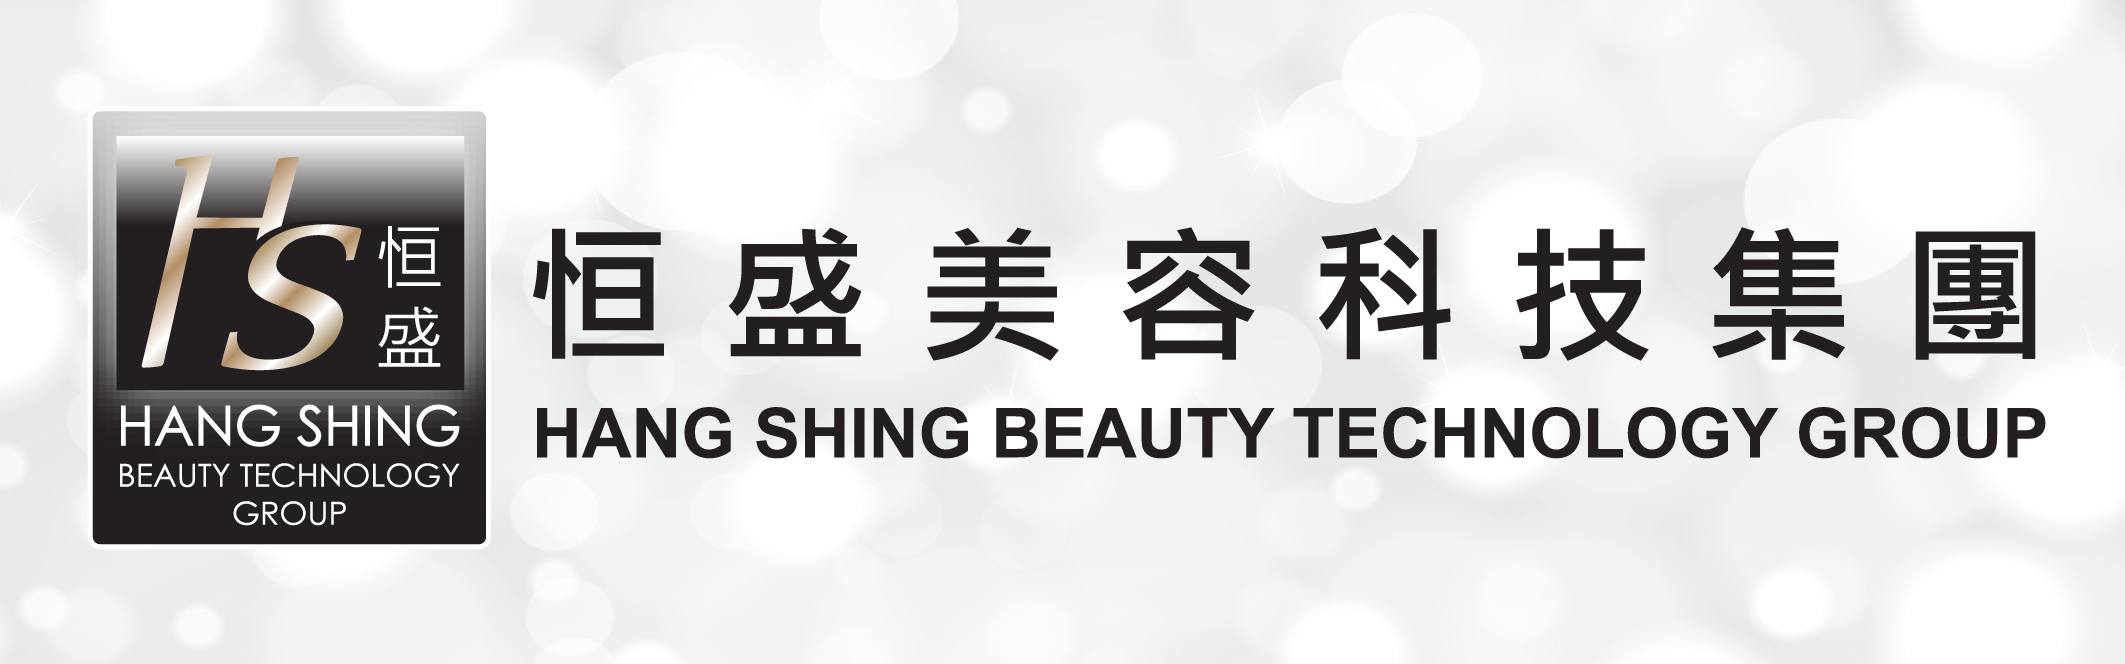 恒盛美容科技集團 Hang Shing Beauty Technology Group